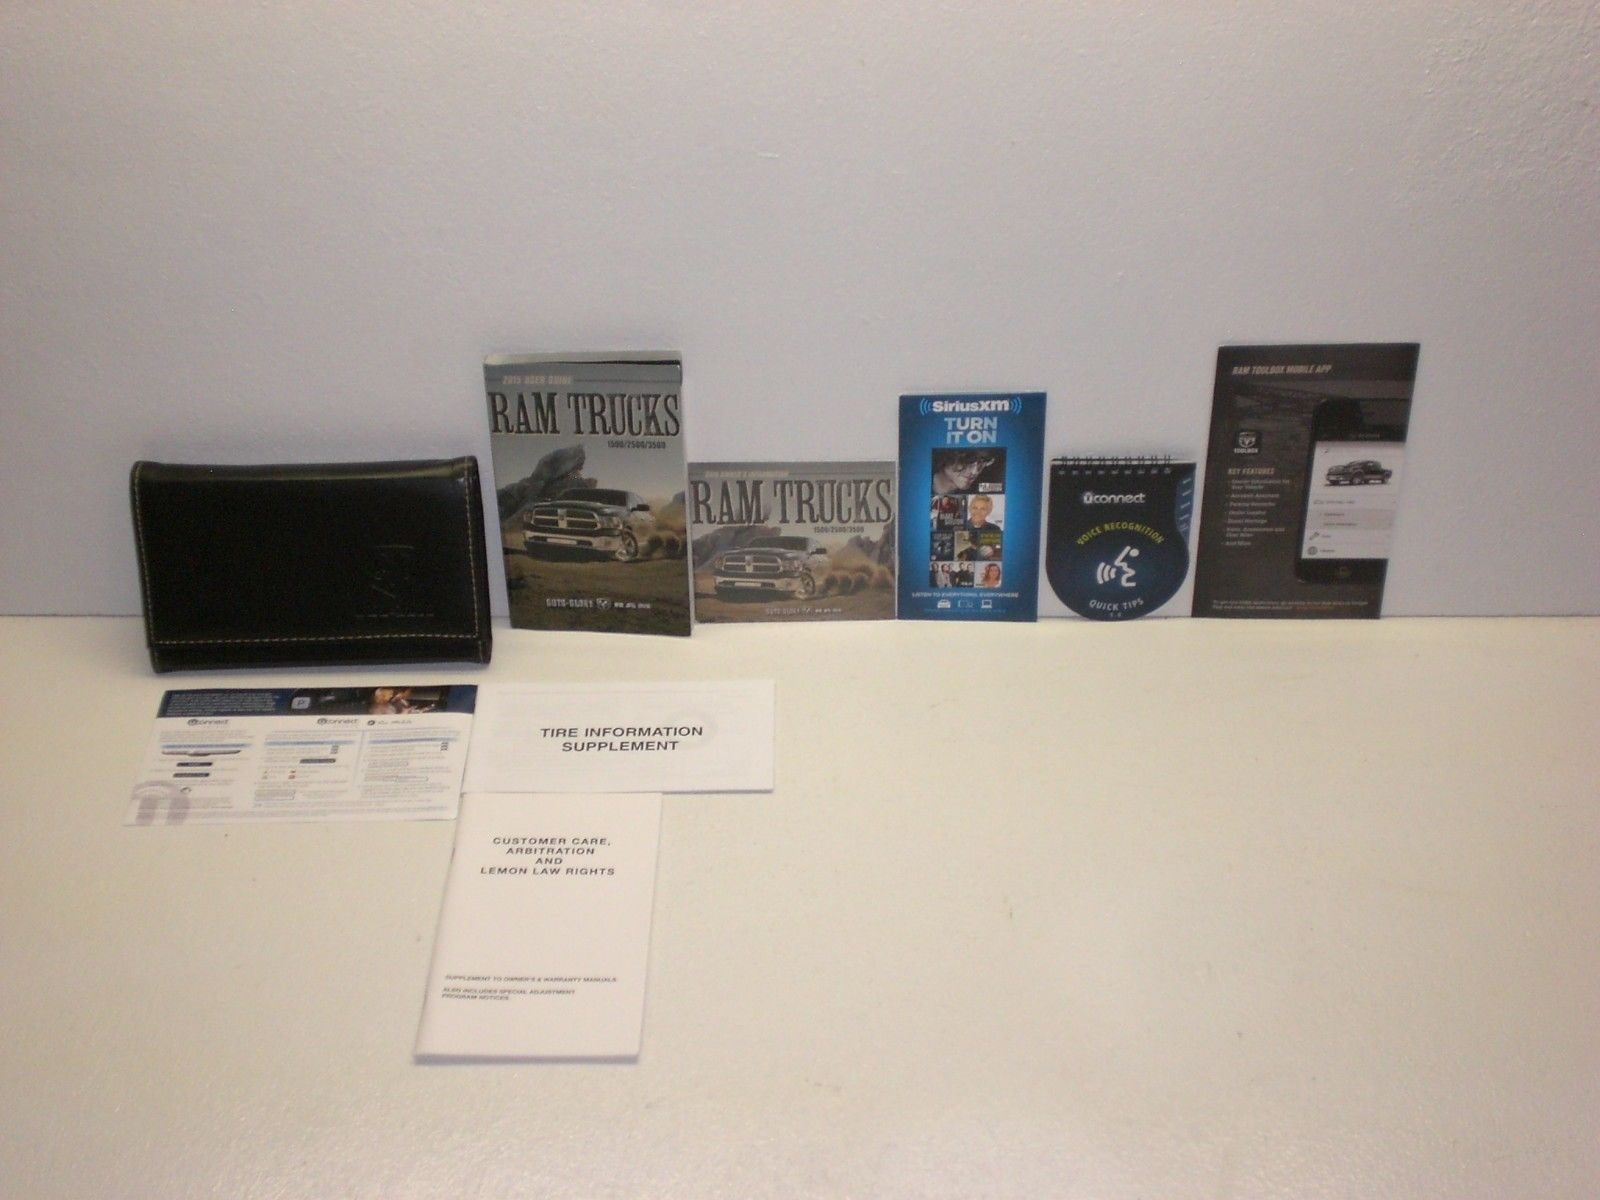 2015 Dodge Ram Trucks 1500/2500/3500 Owners Manual with DVD and Case - Set  (eBay Link)